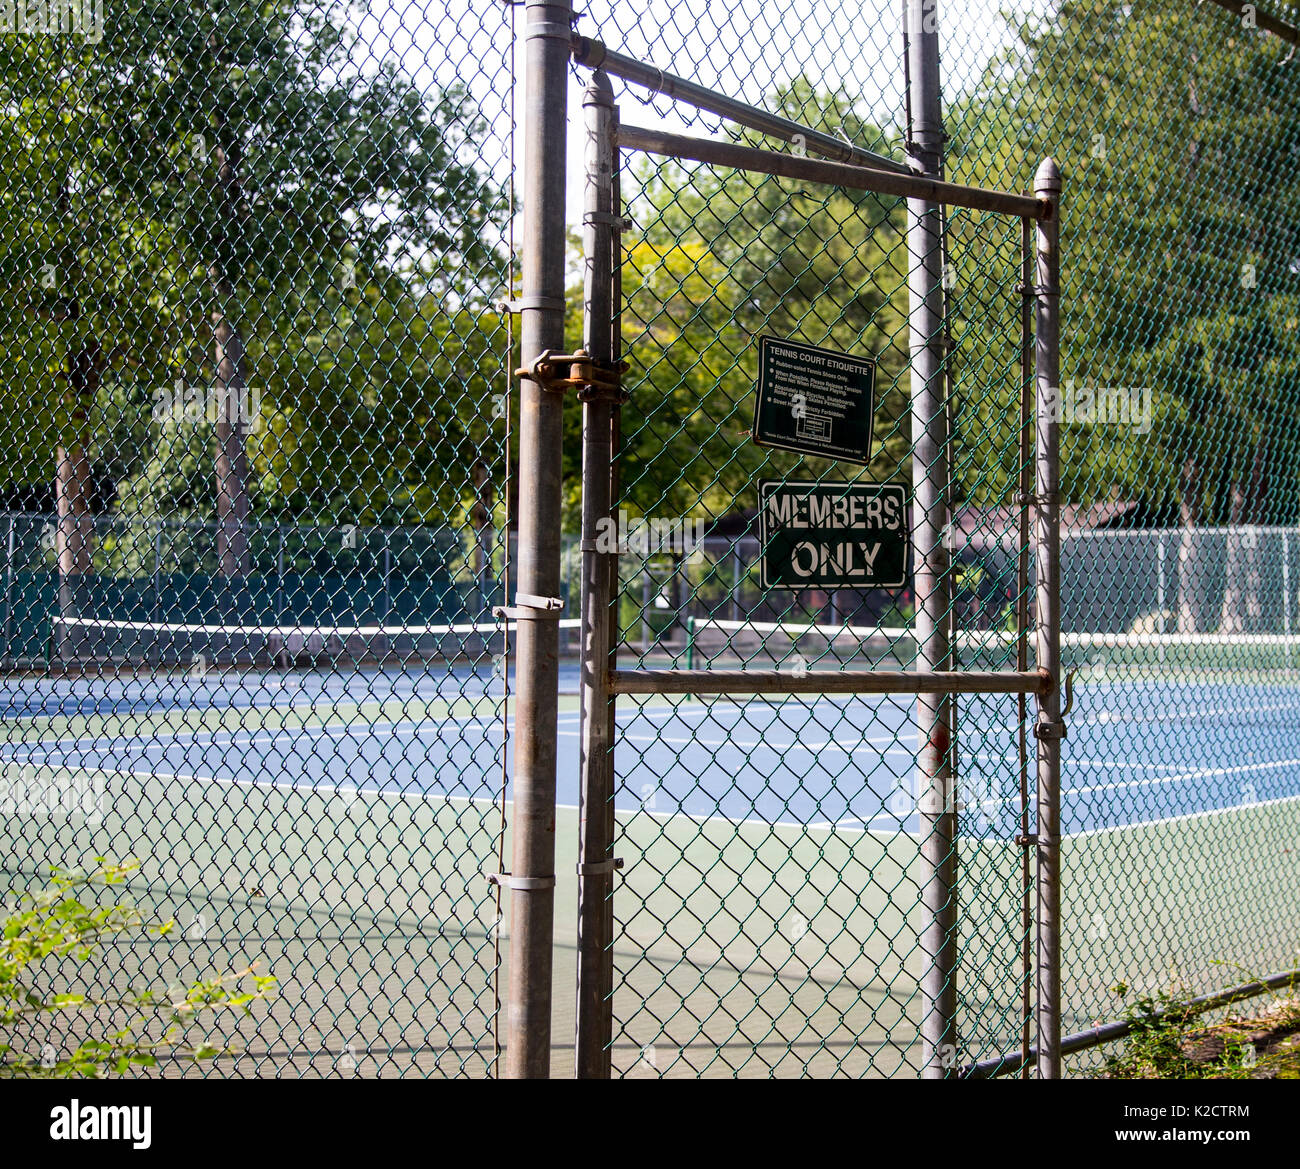 Members Only sign at the entrance to tennis courts in Upper Saddle River, New Jersey - Stock Image